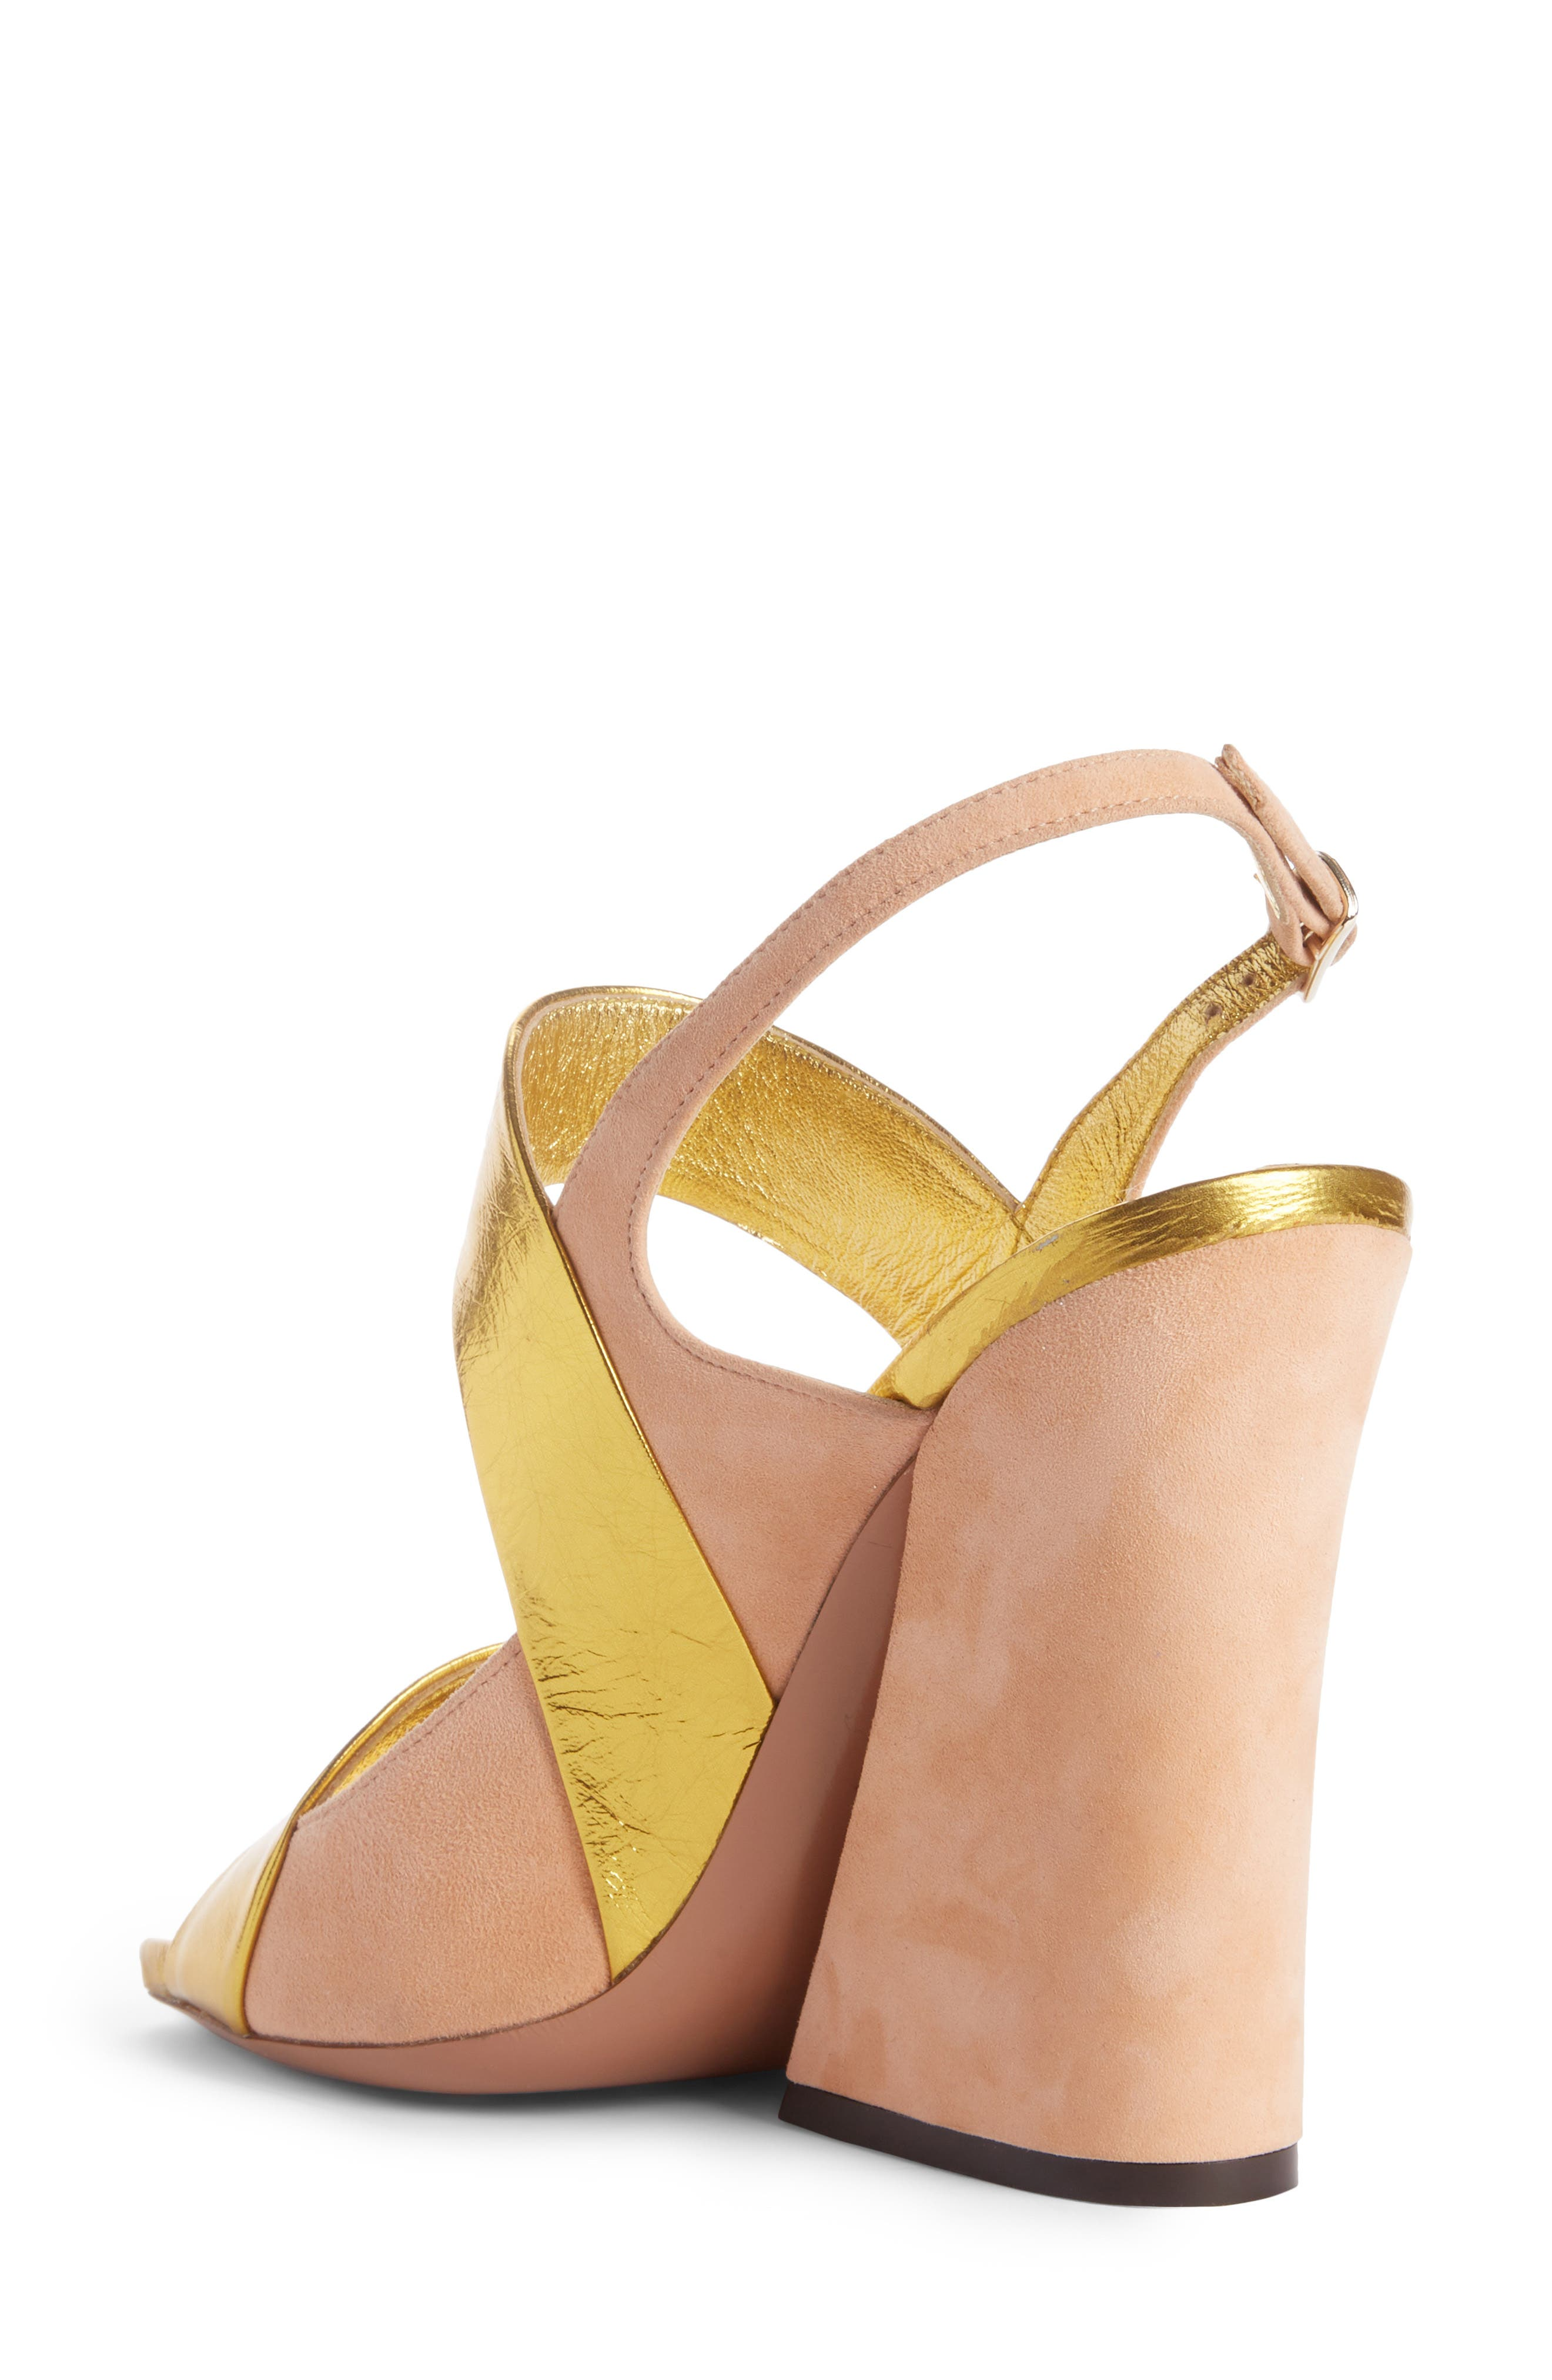 Block Heel Sandal,                             Alternate thumbnail 2, color,                             Gold